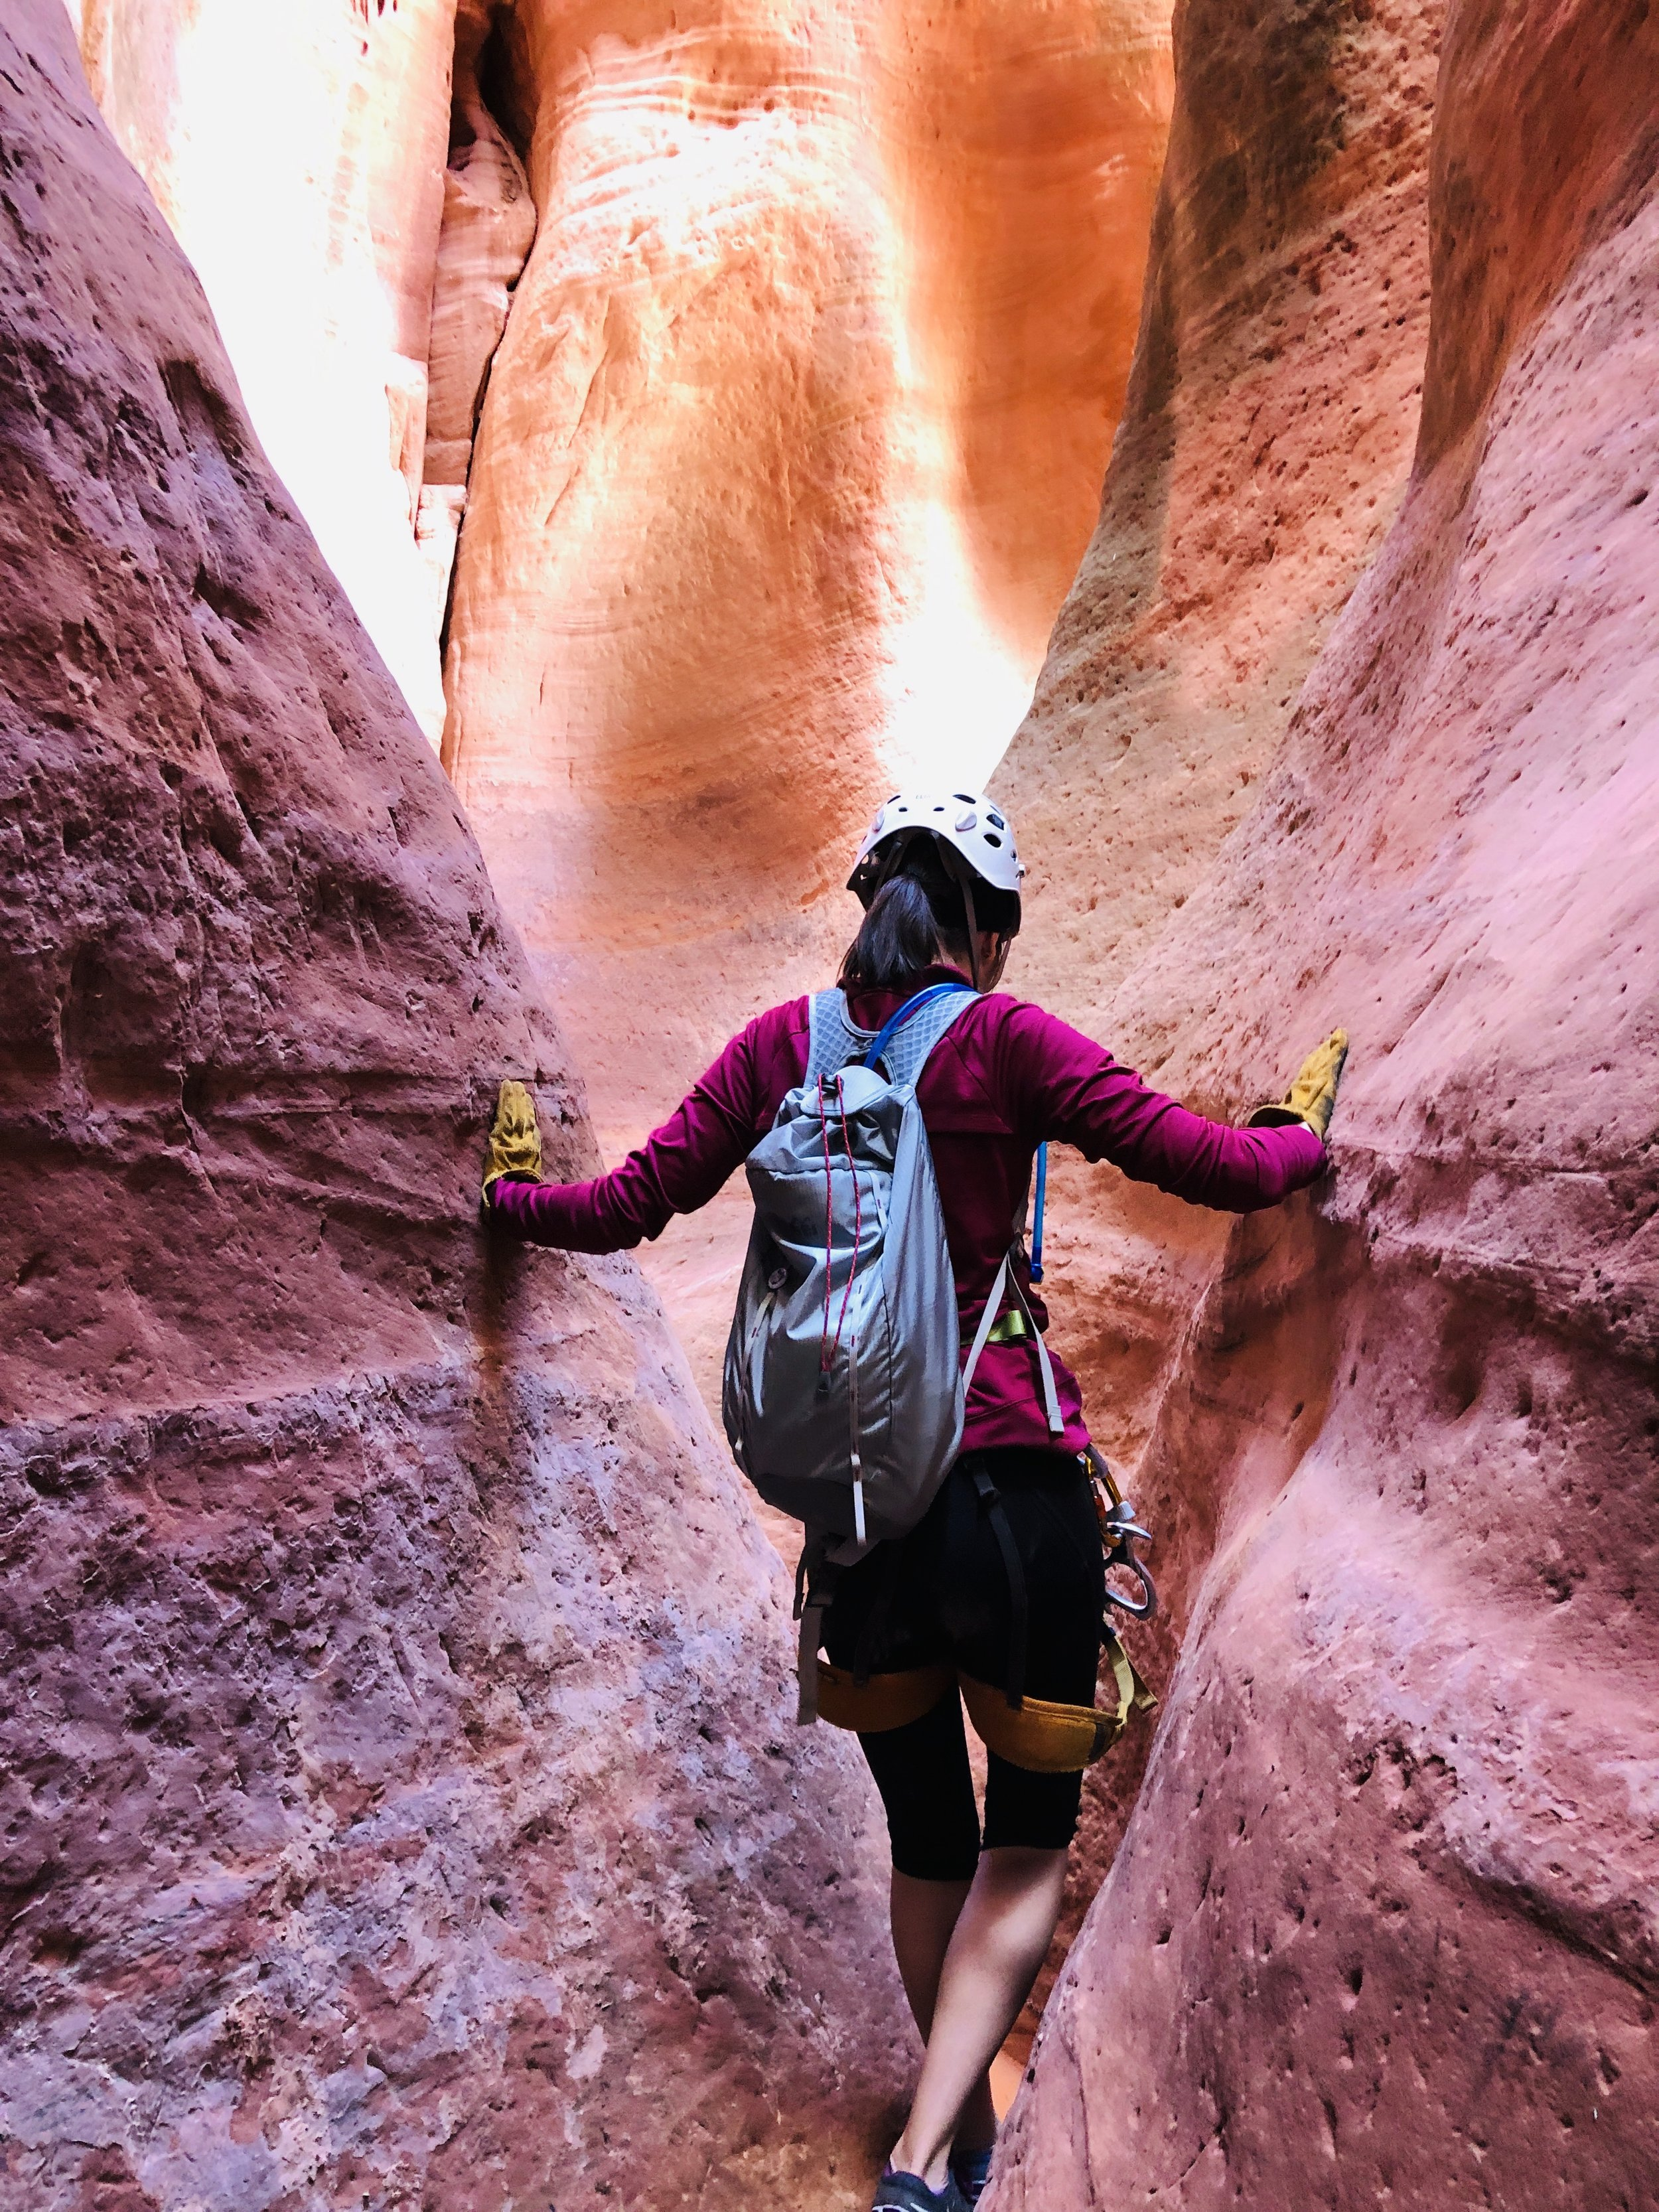 slot-canyon-airbnb-experience-east-zion-adventure-hiking